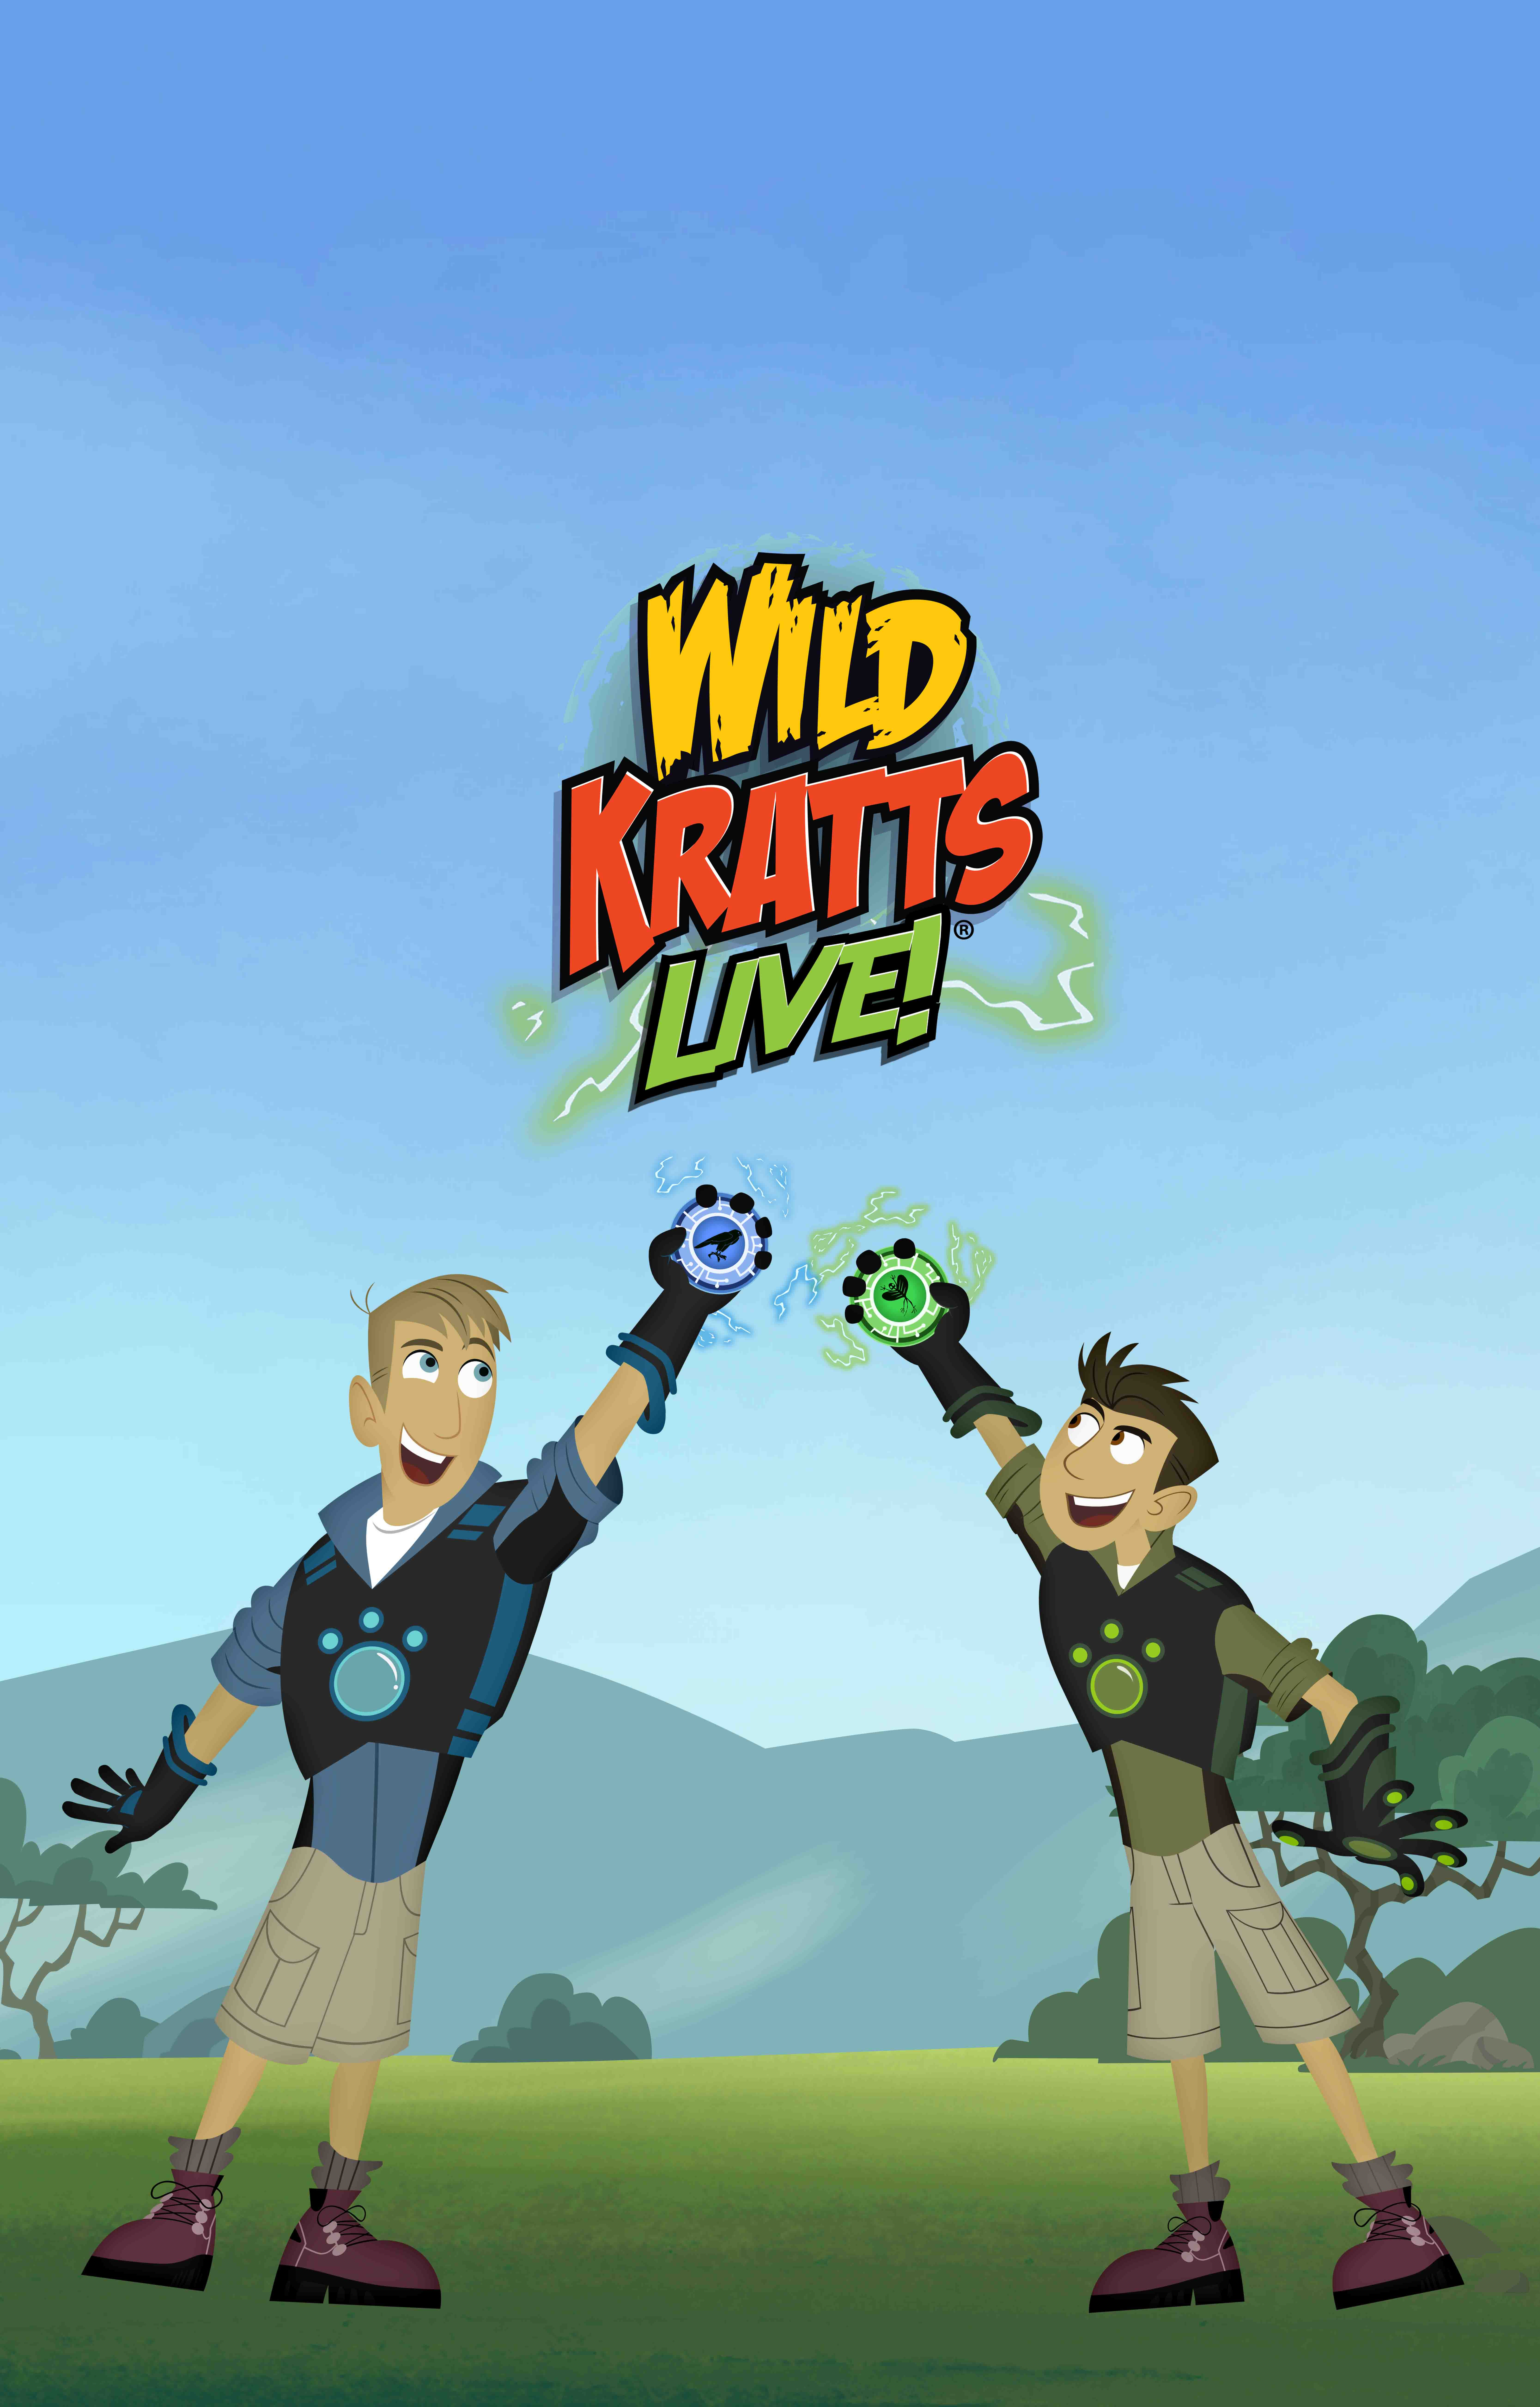 Get Your Tickets for Wild Kratts Live! Now!